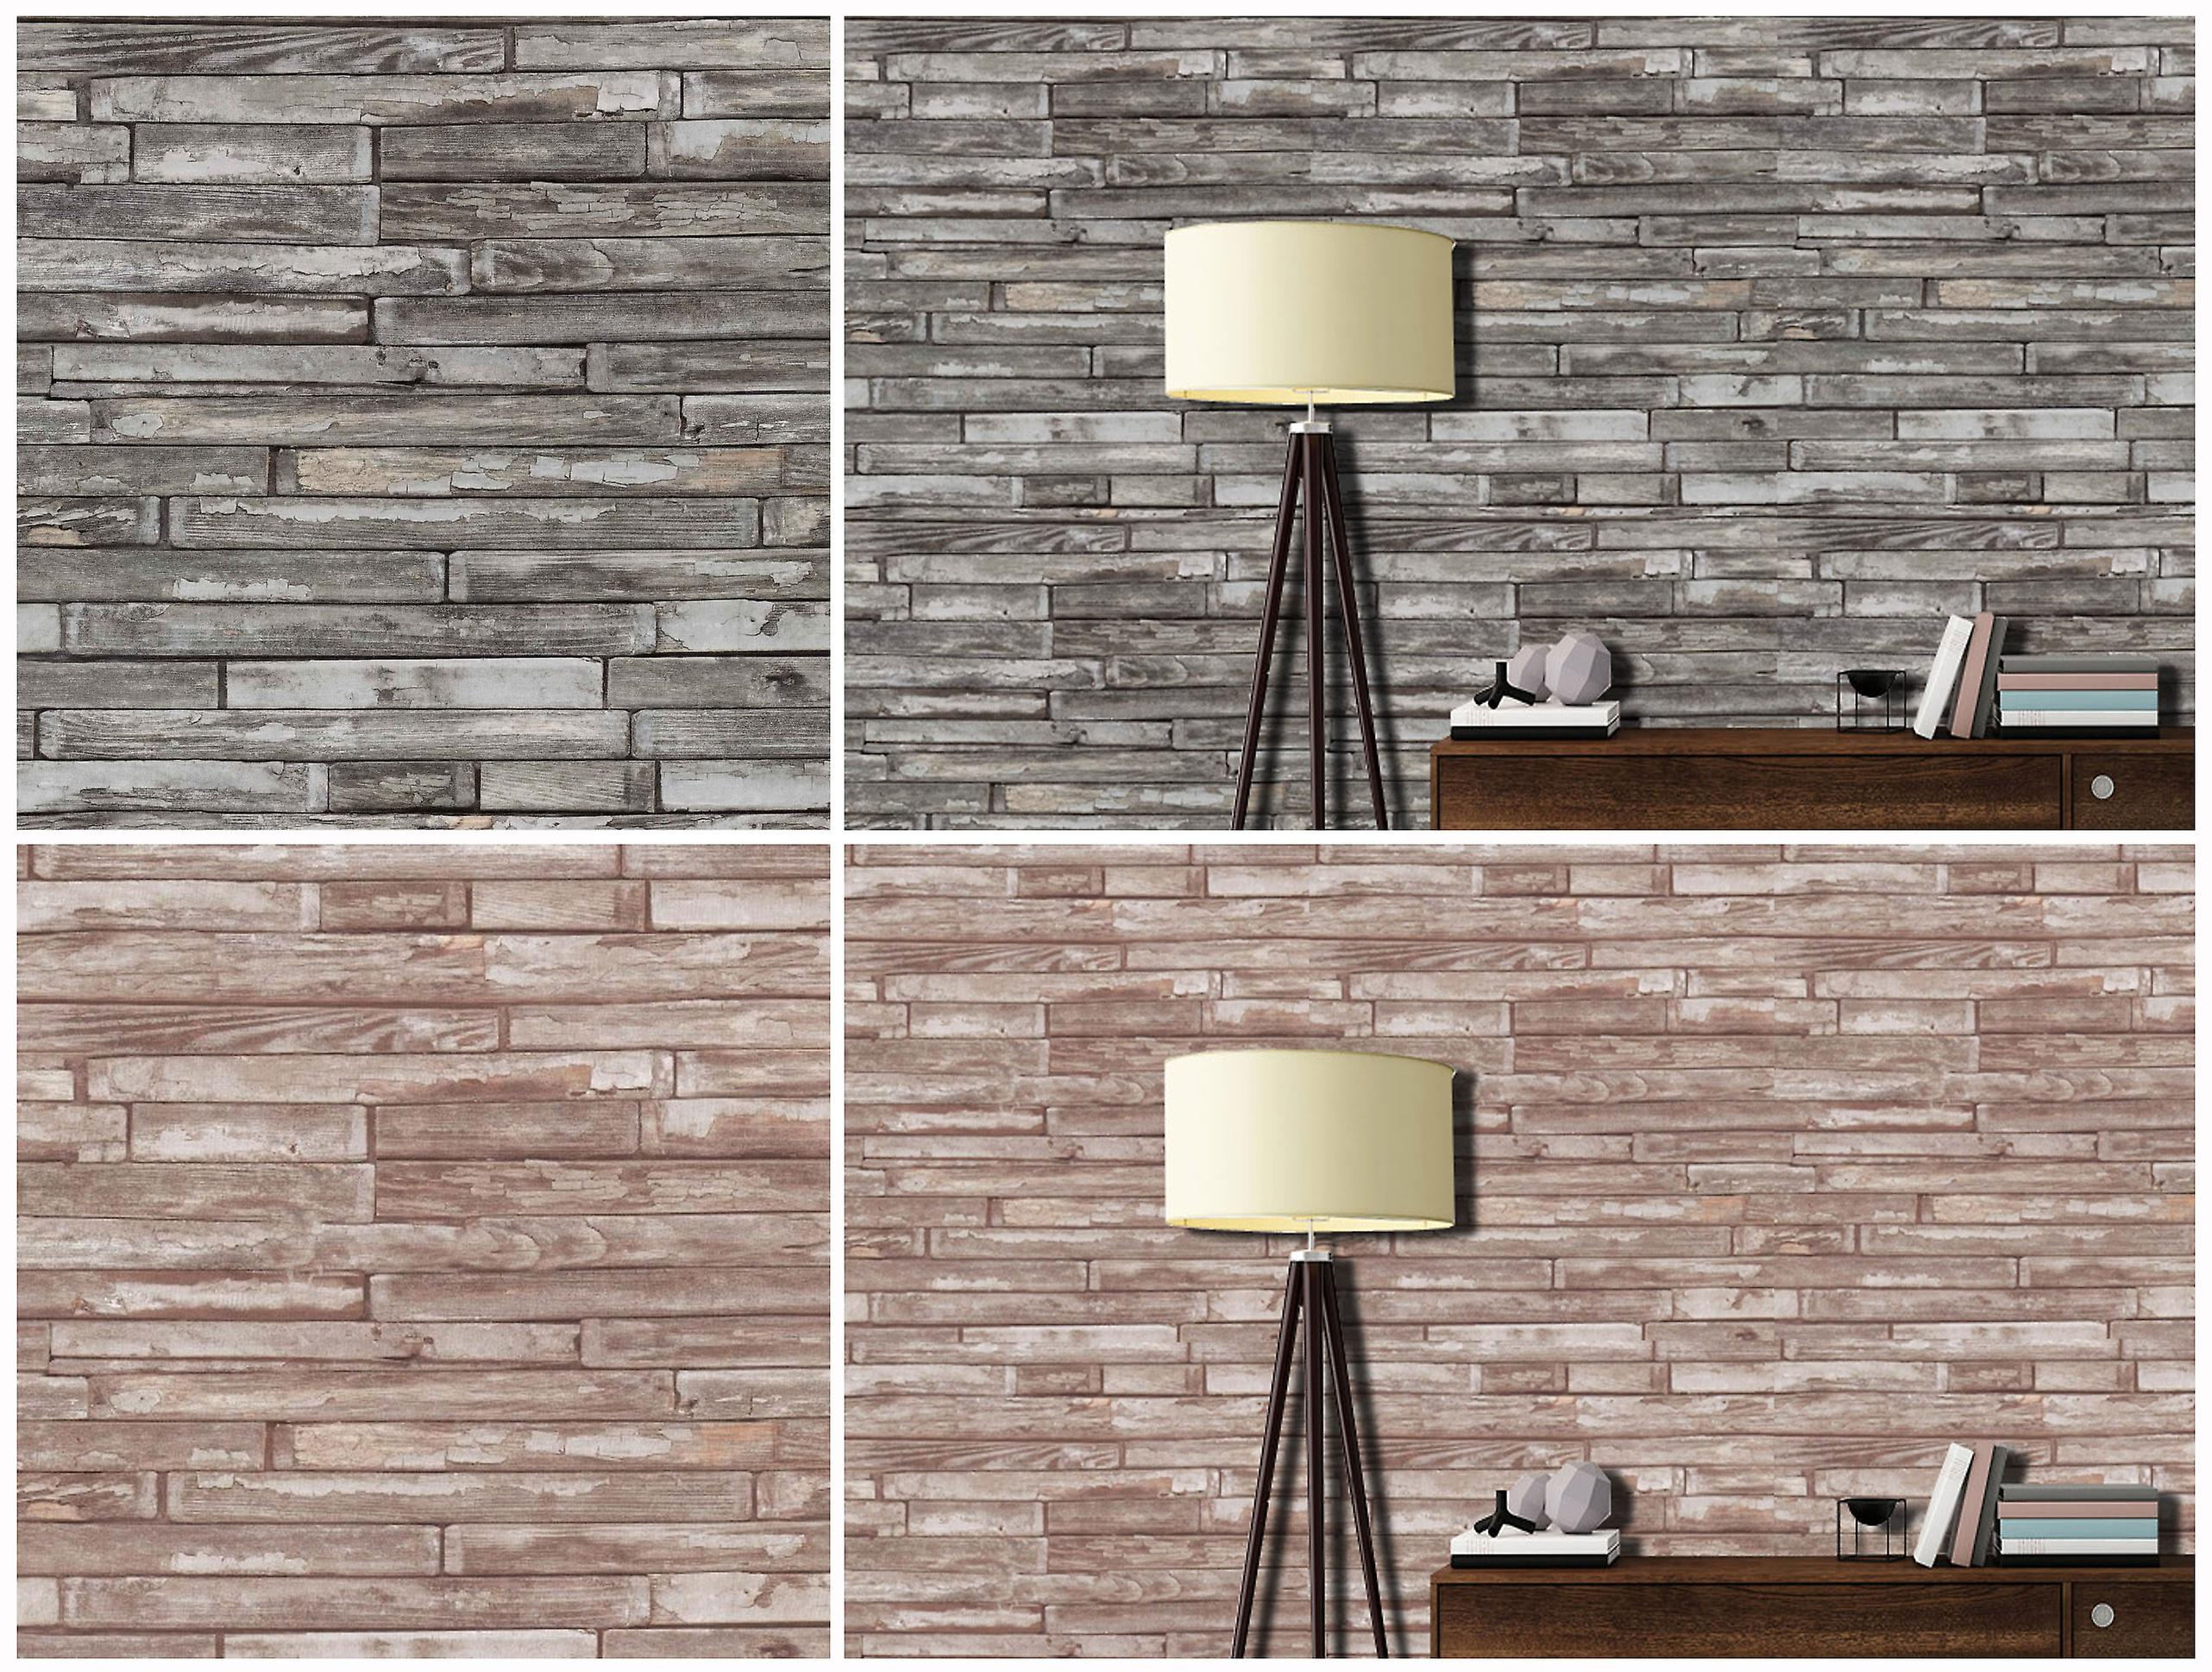 Wood Effect Wallpaper Wooden Blocks Panels Faux Realistic Weathered P+S